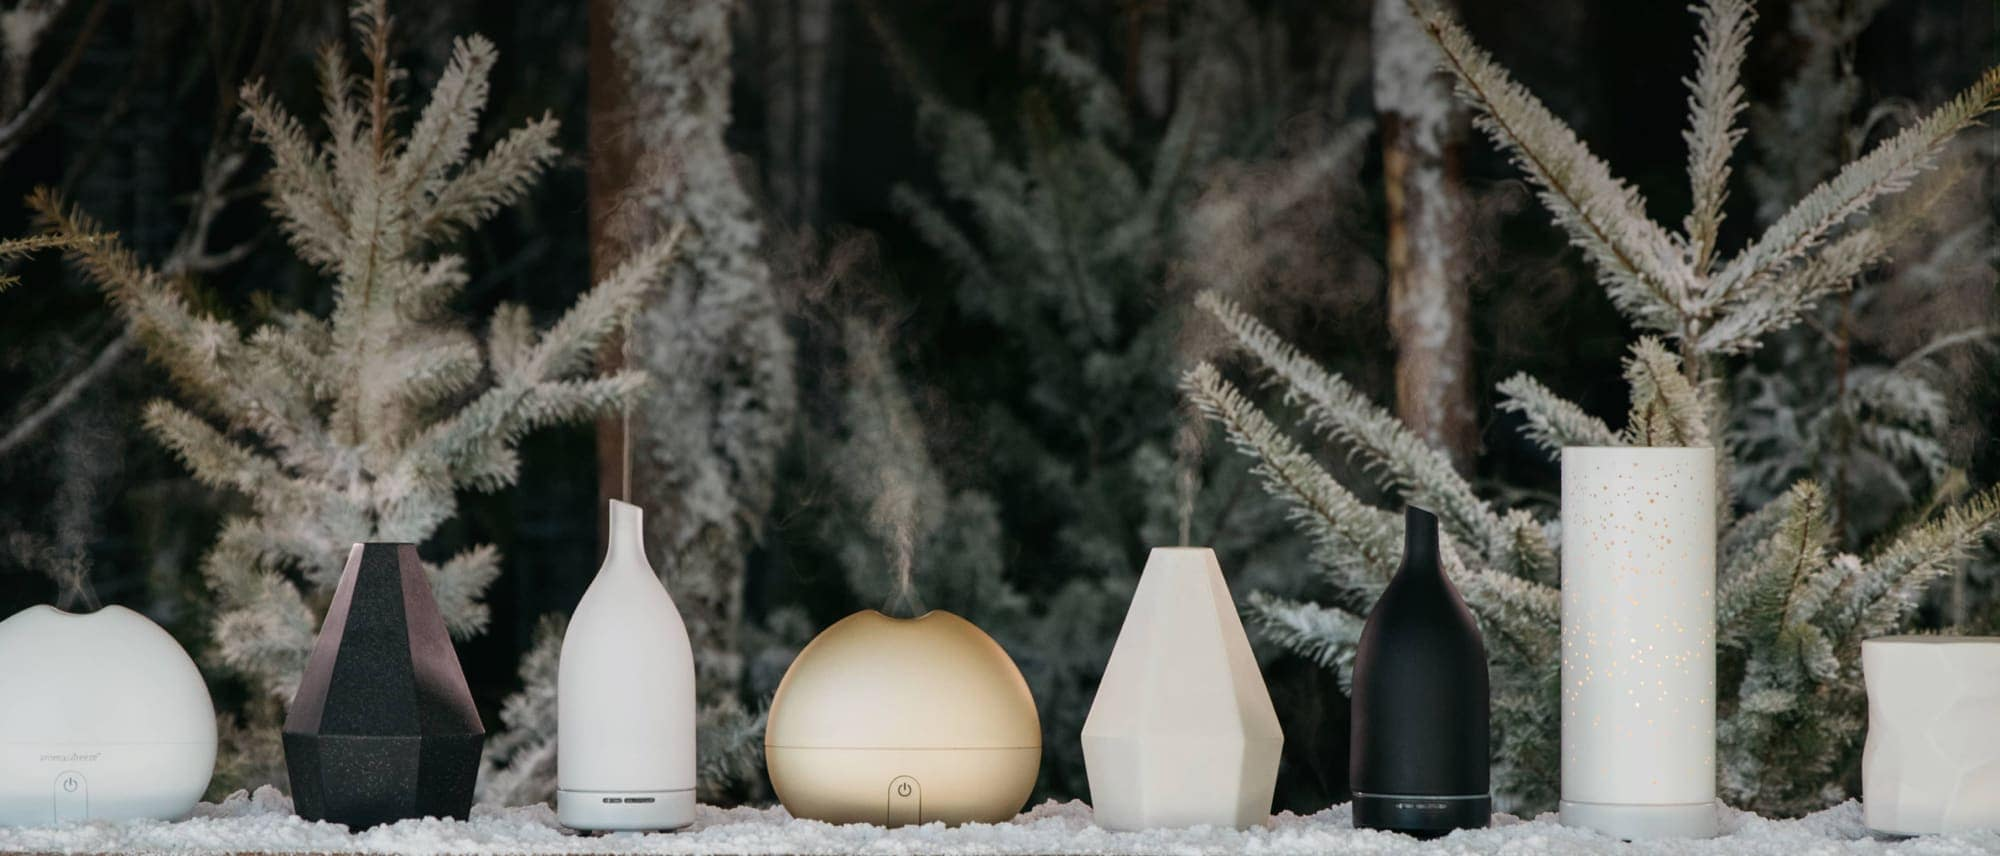 saje diffusers displayed beside each other against forest background